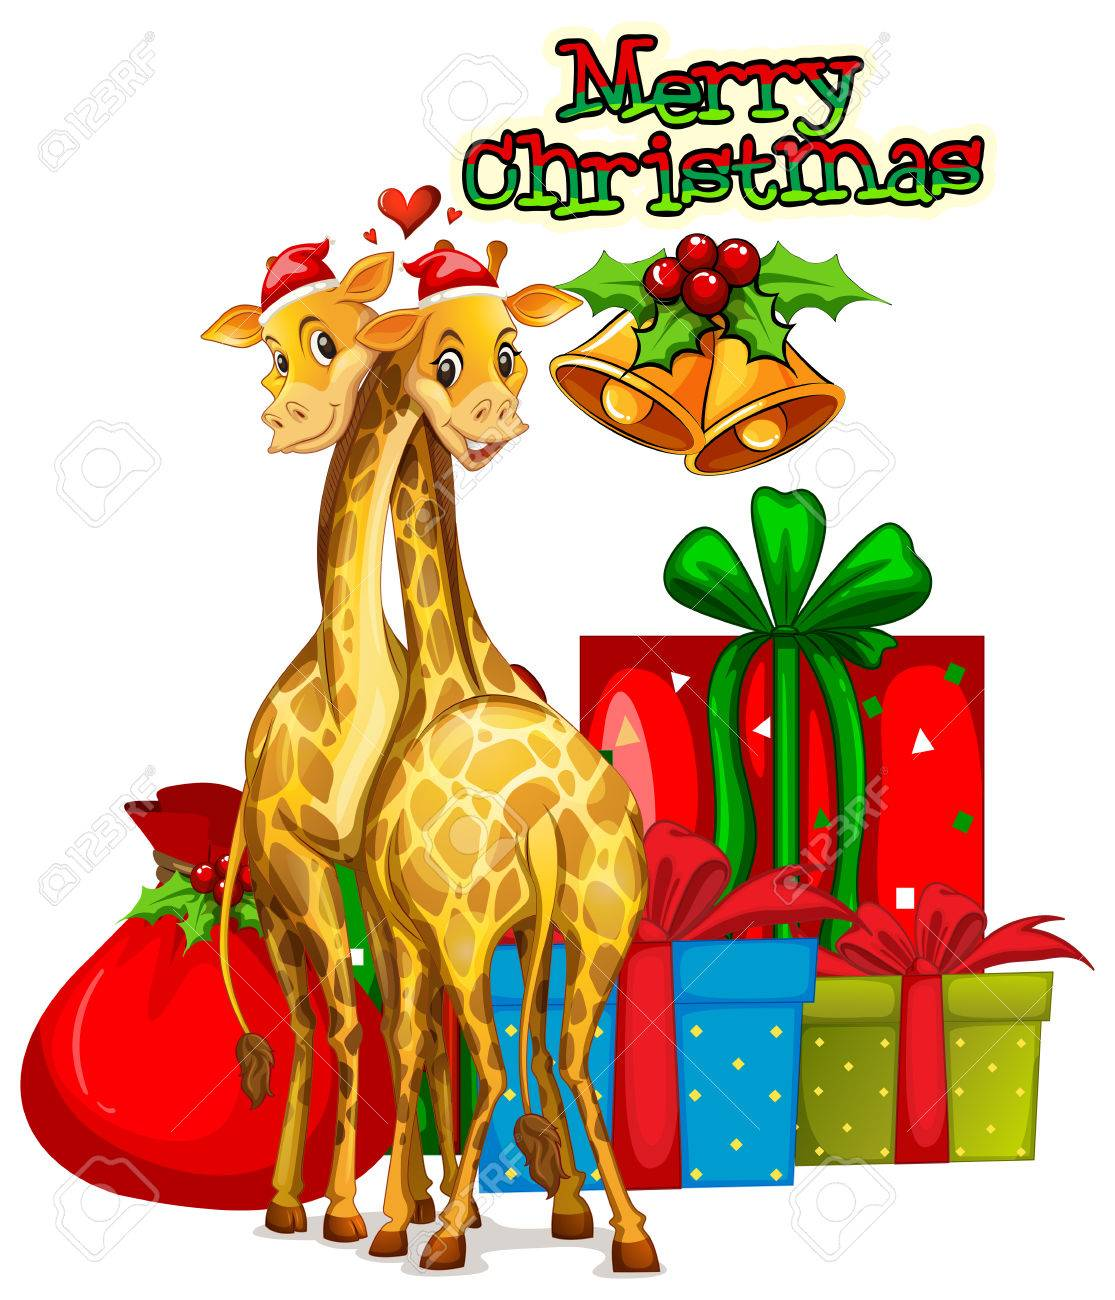 hight resolution of christmas card template with giraffes and presents illustration stock vector 64620194